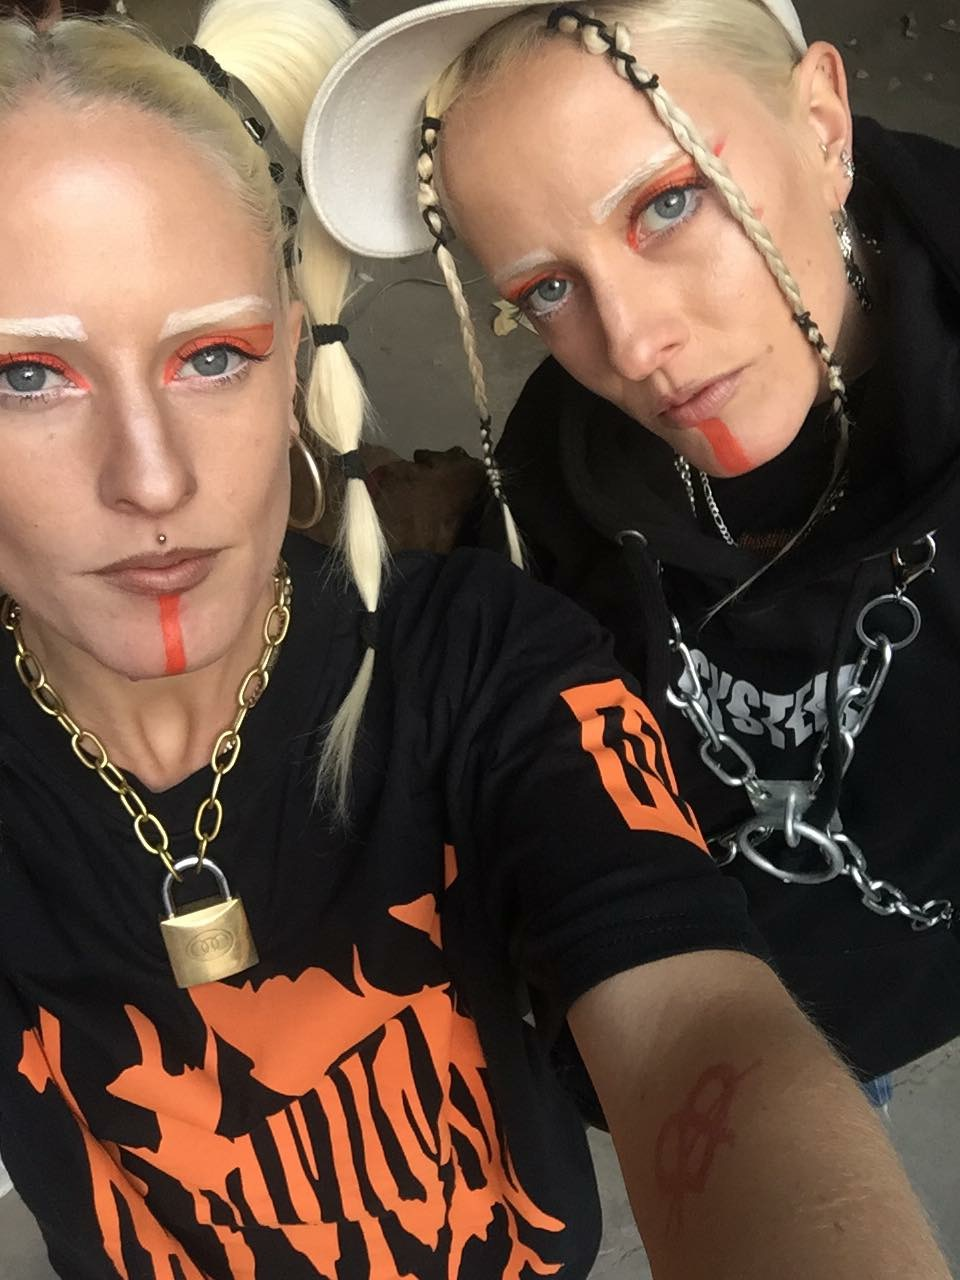 Me n sis wearing The End is Near threads and wolfie chains. Make-up by Lisa Mulas.